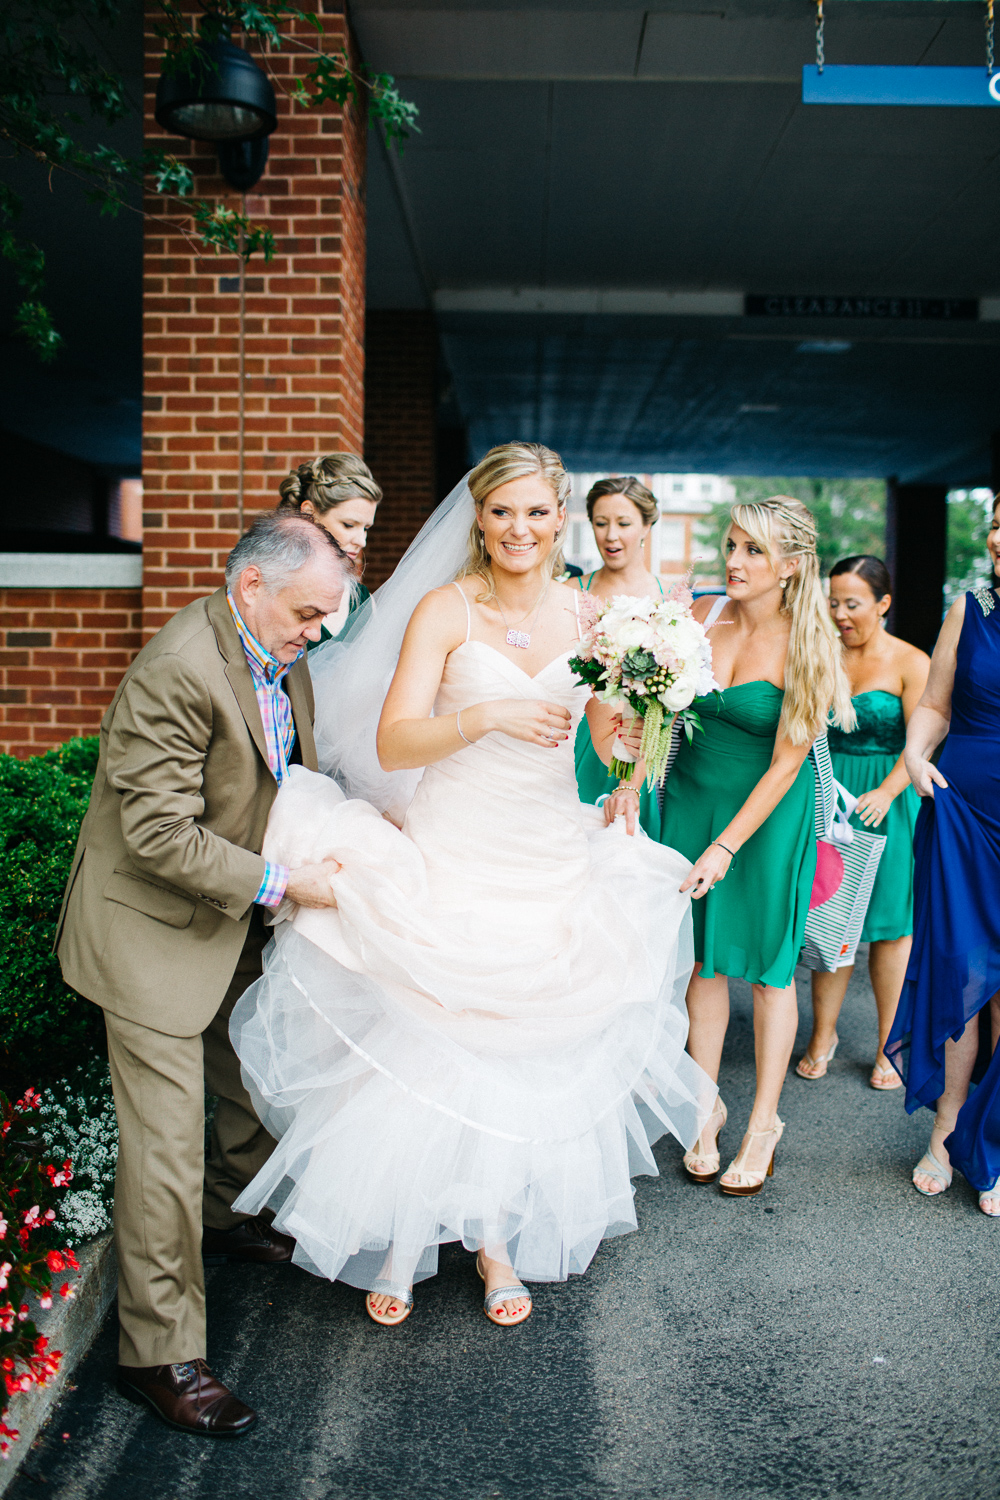 0815_colorful_nh_wedding_009.jpg